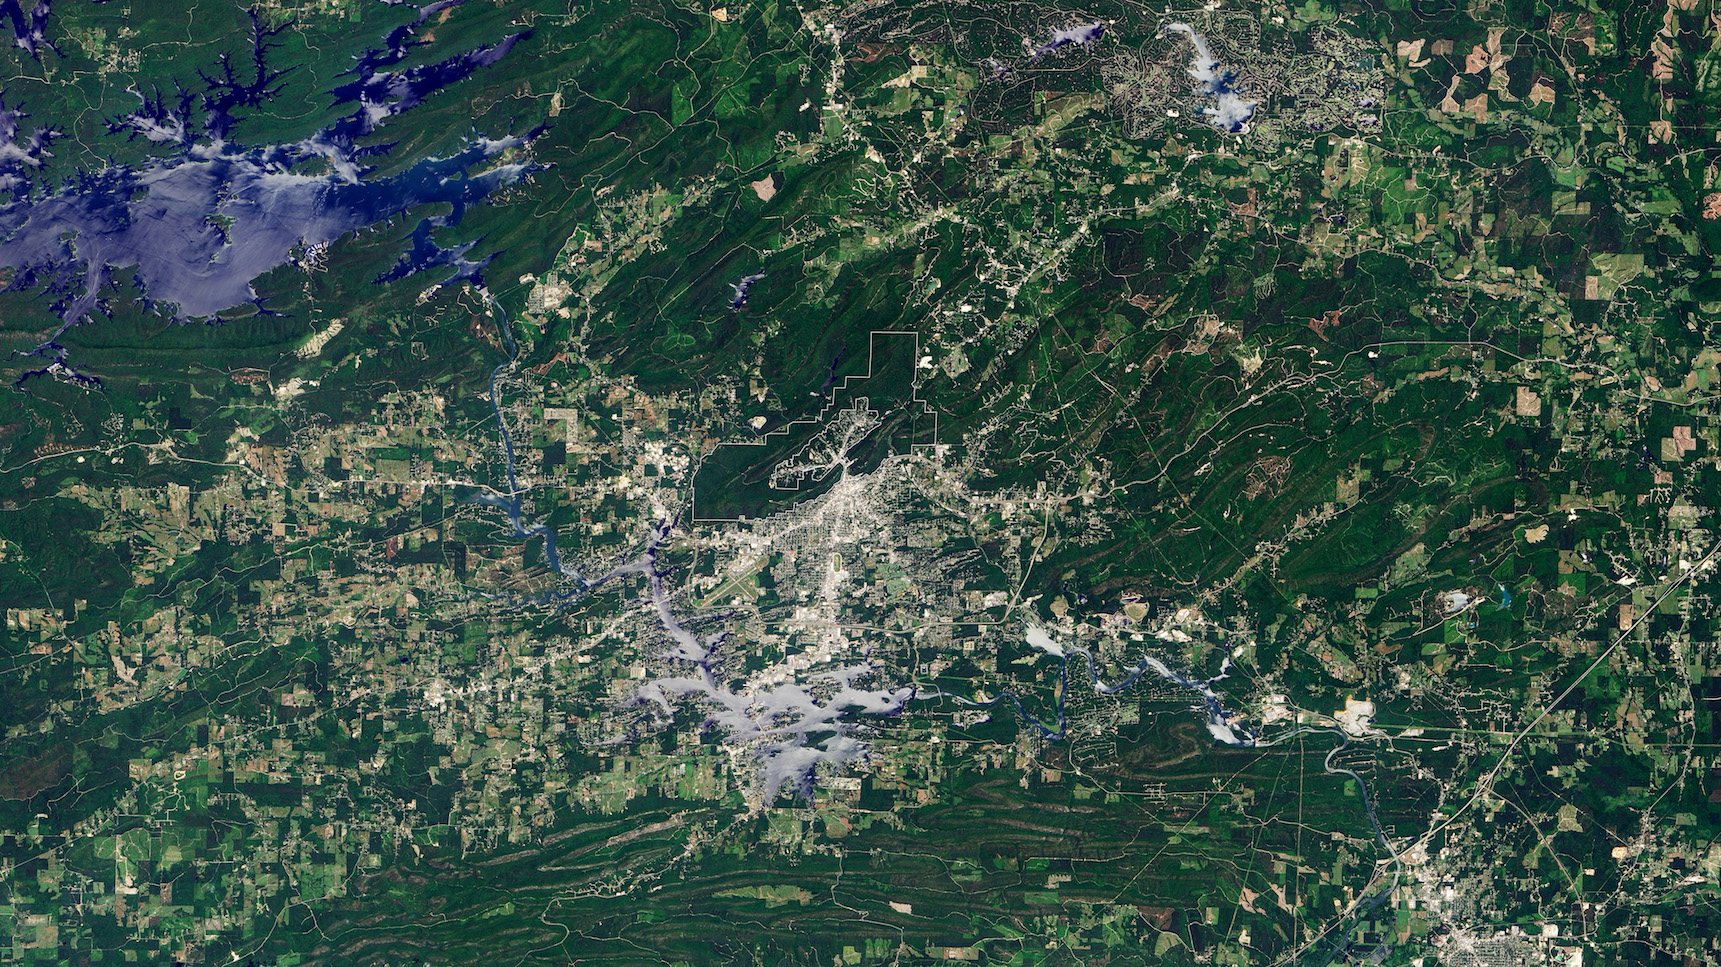 Today's Image of the Day comes thanks to the NASA Earth Observatory and features a look at Hot Springs National Park in Arkansas.